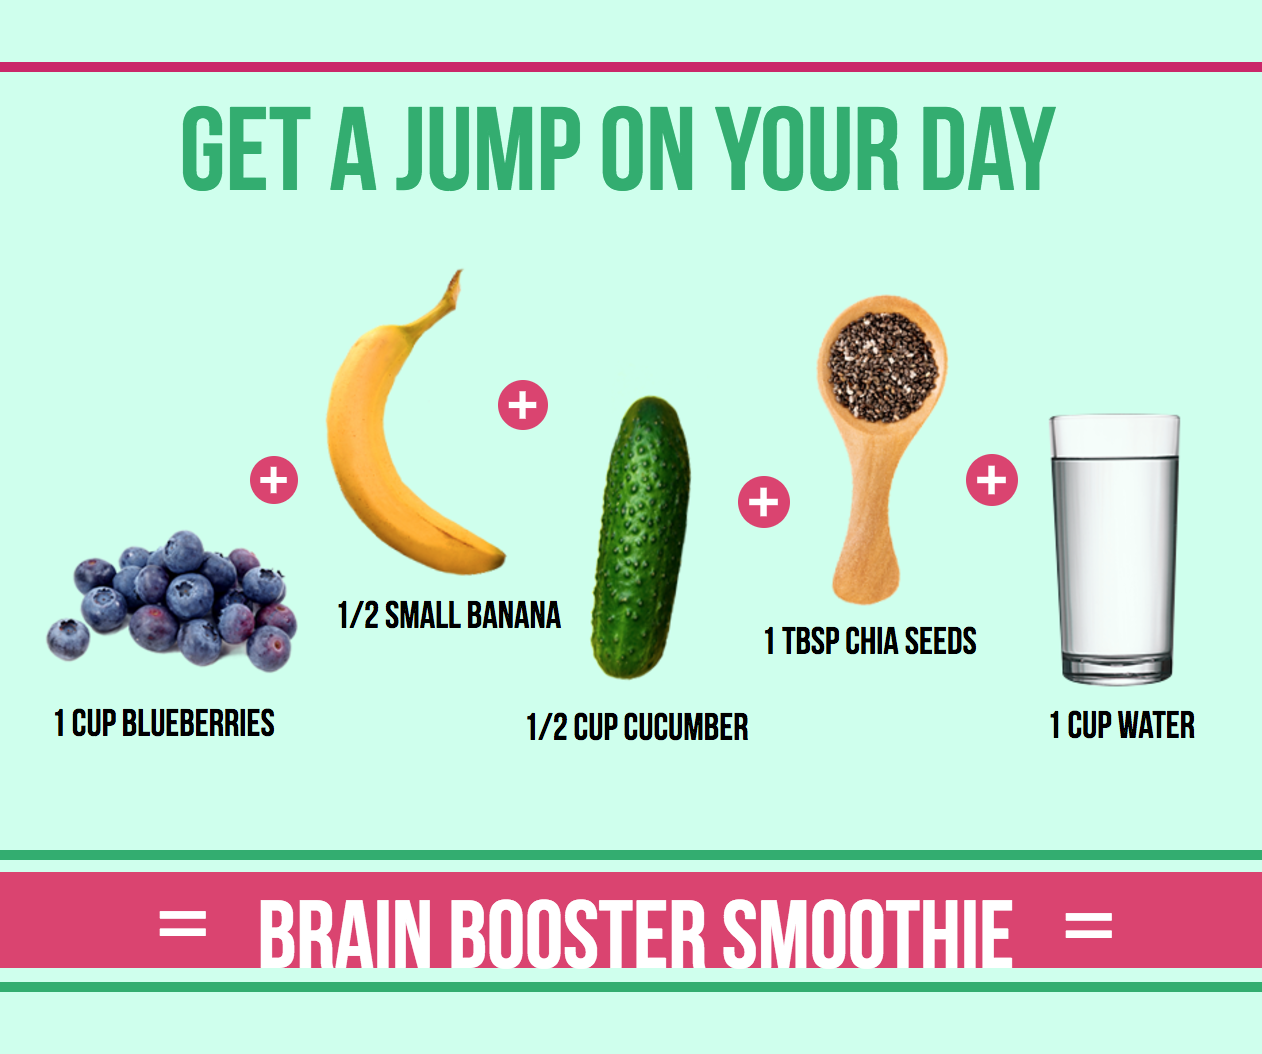 brain booster smoothie infographic